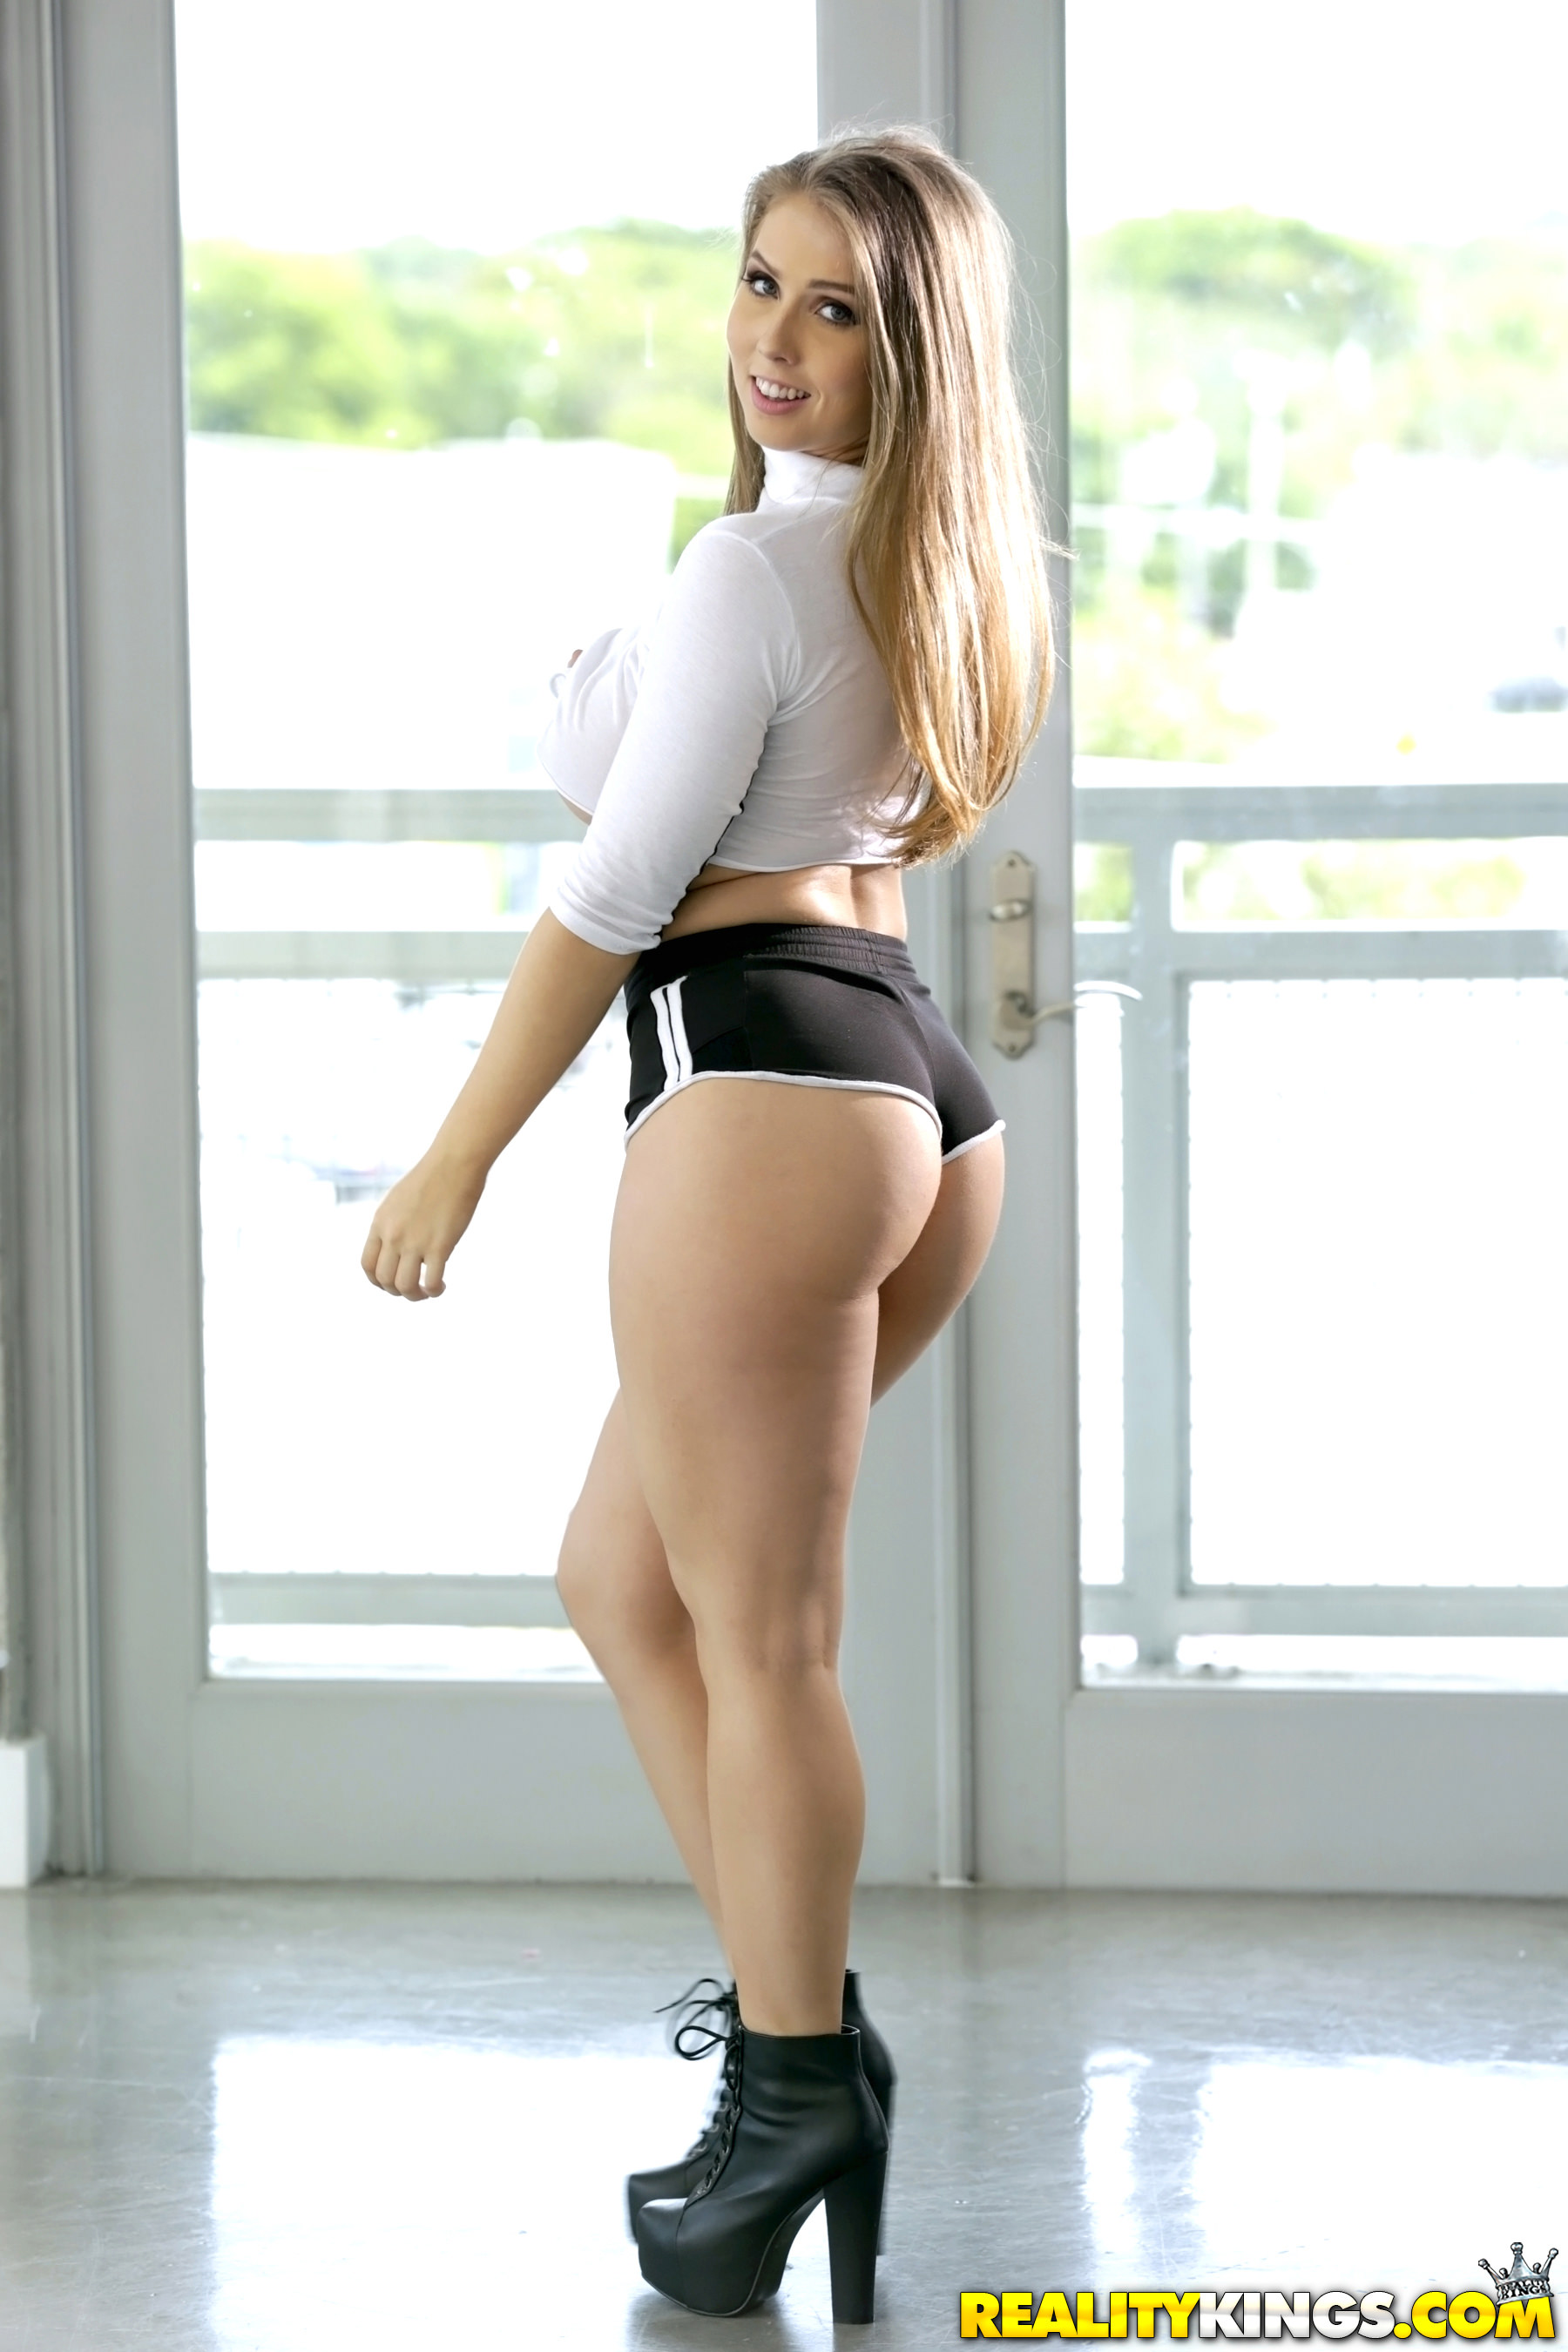 Booty in shorts porn